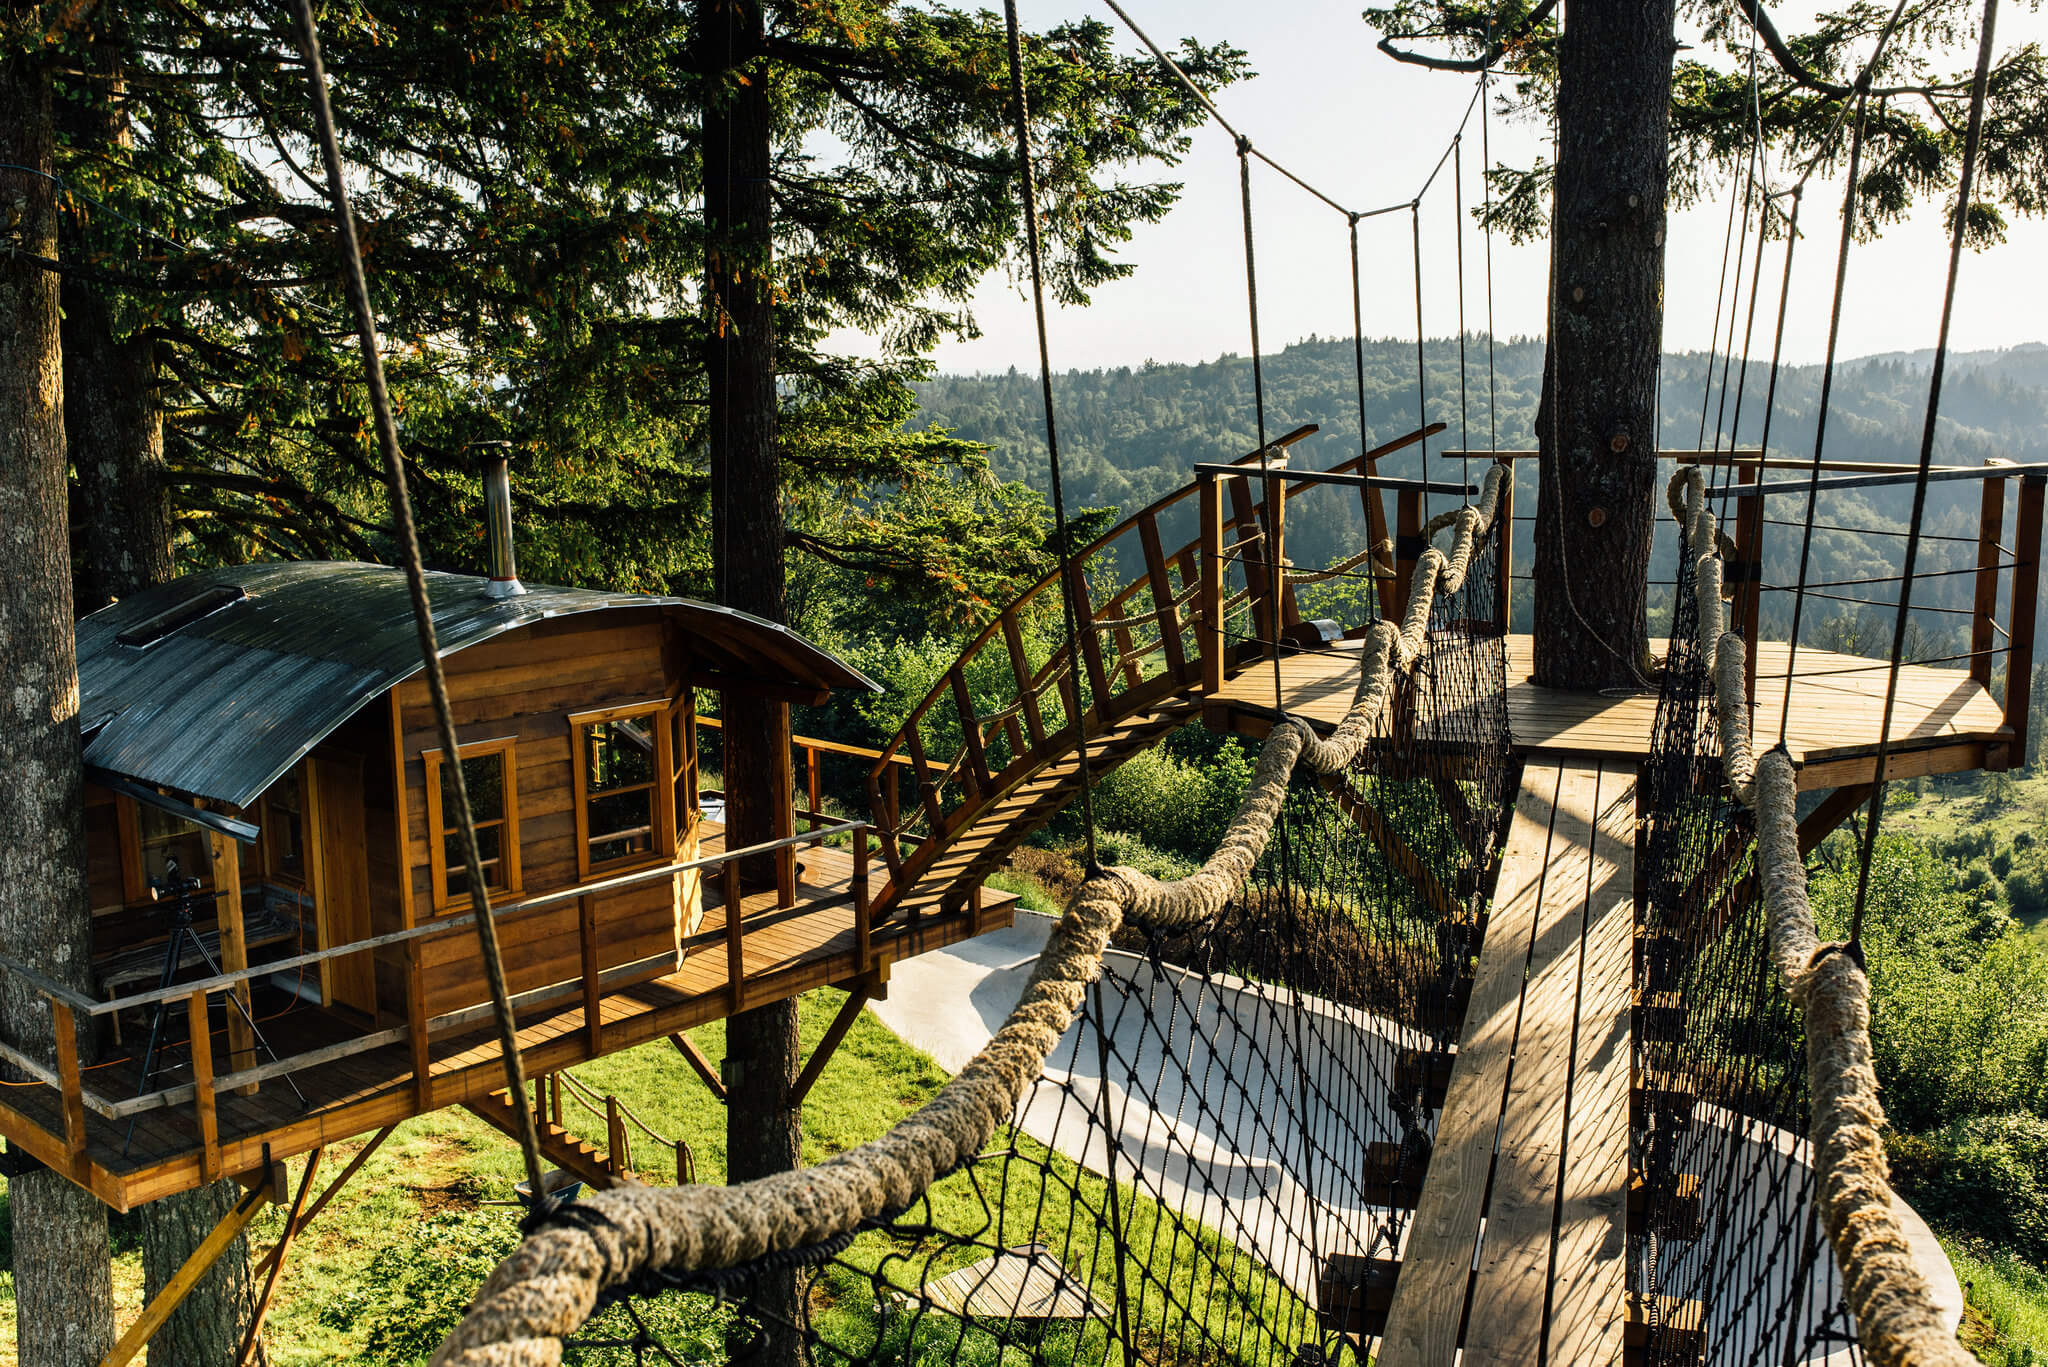 Car That Are Cool >> Guy Quits His Job To Build a Cool Tree House And Live Like a King